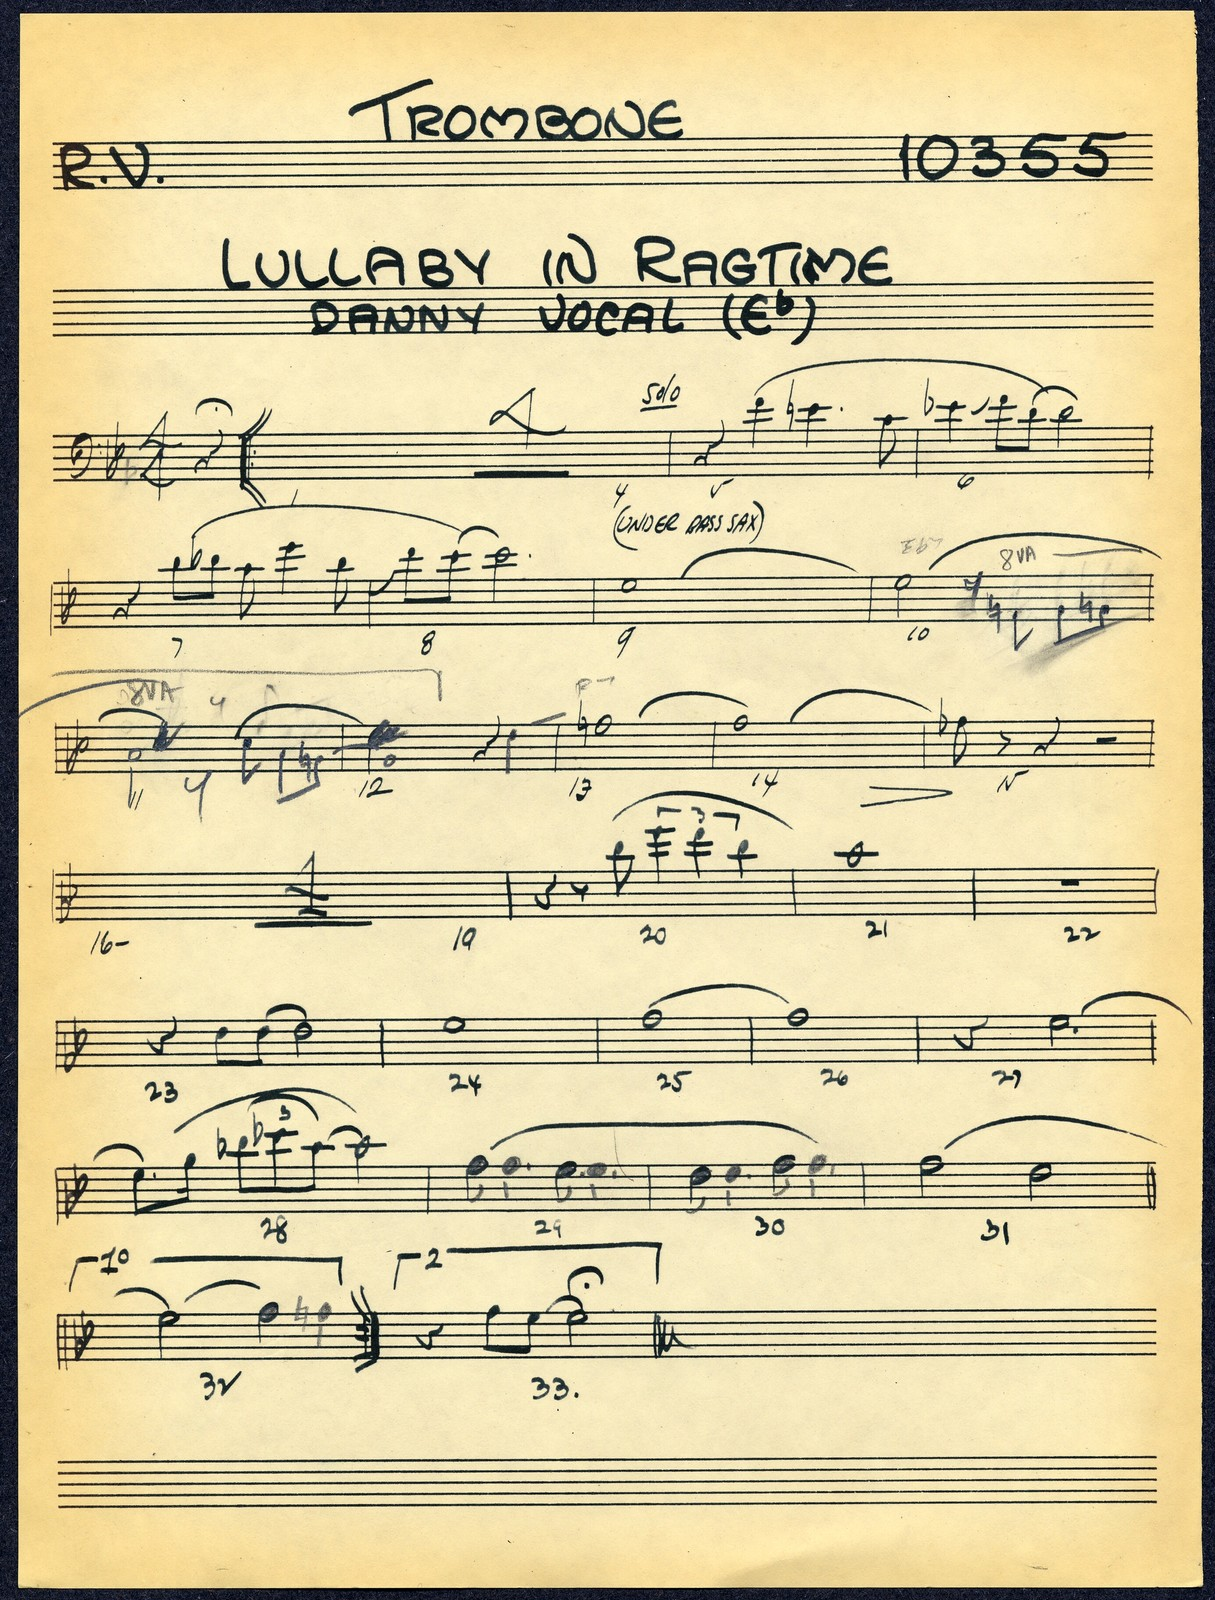 Lullaby in Ragtime - D. Kaye Vocal